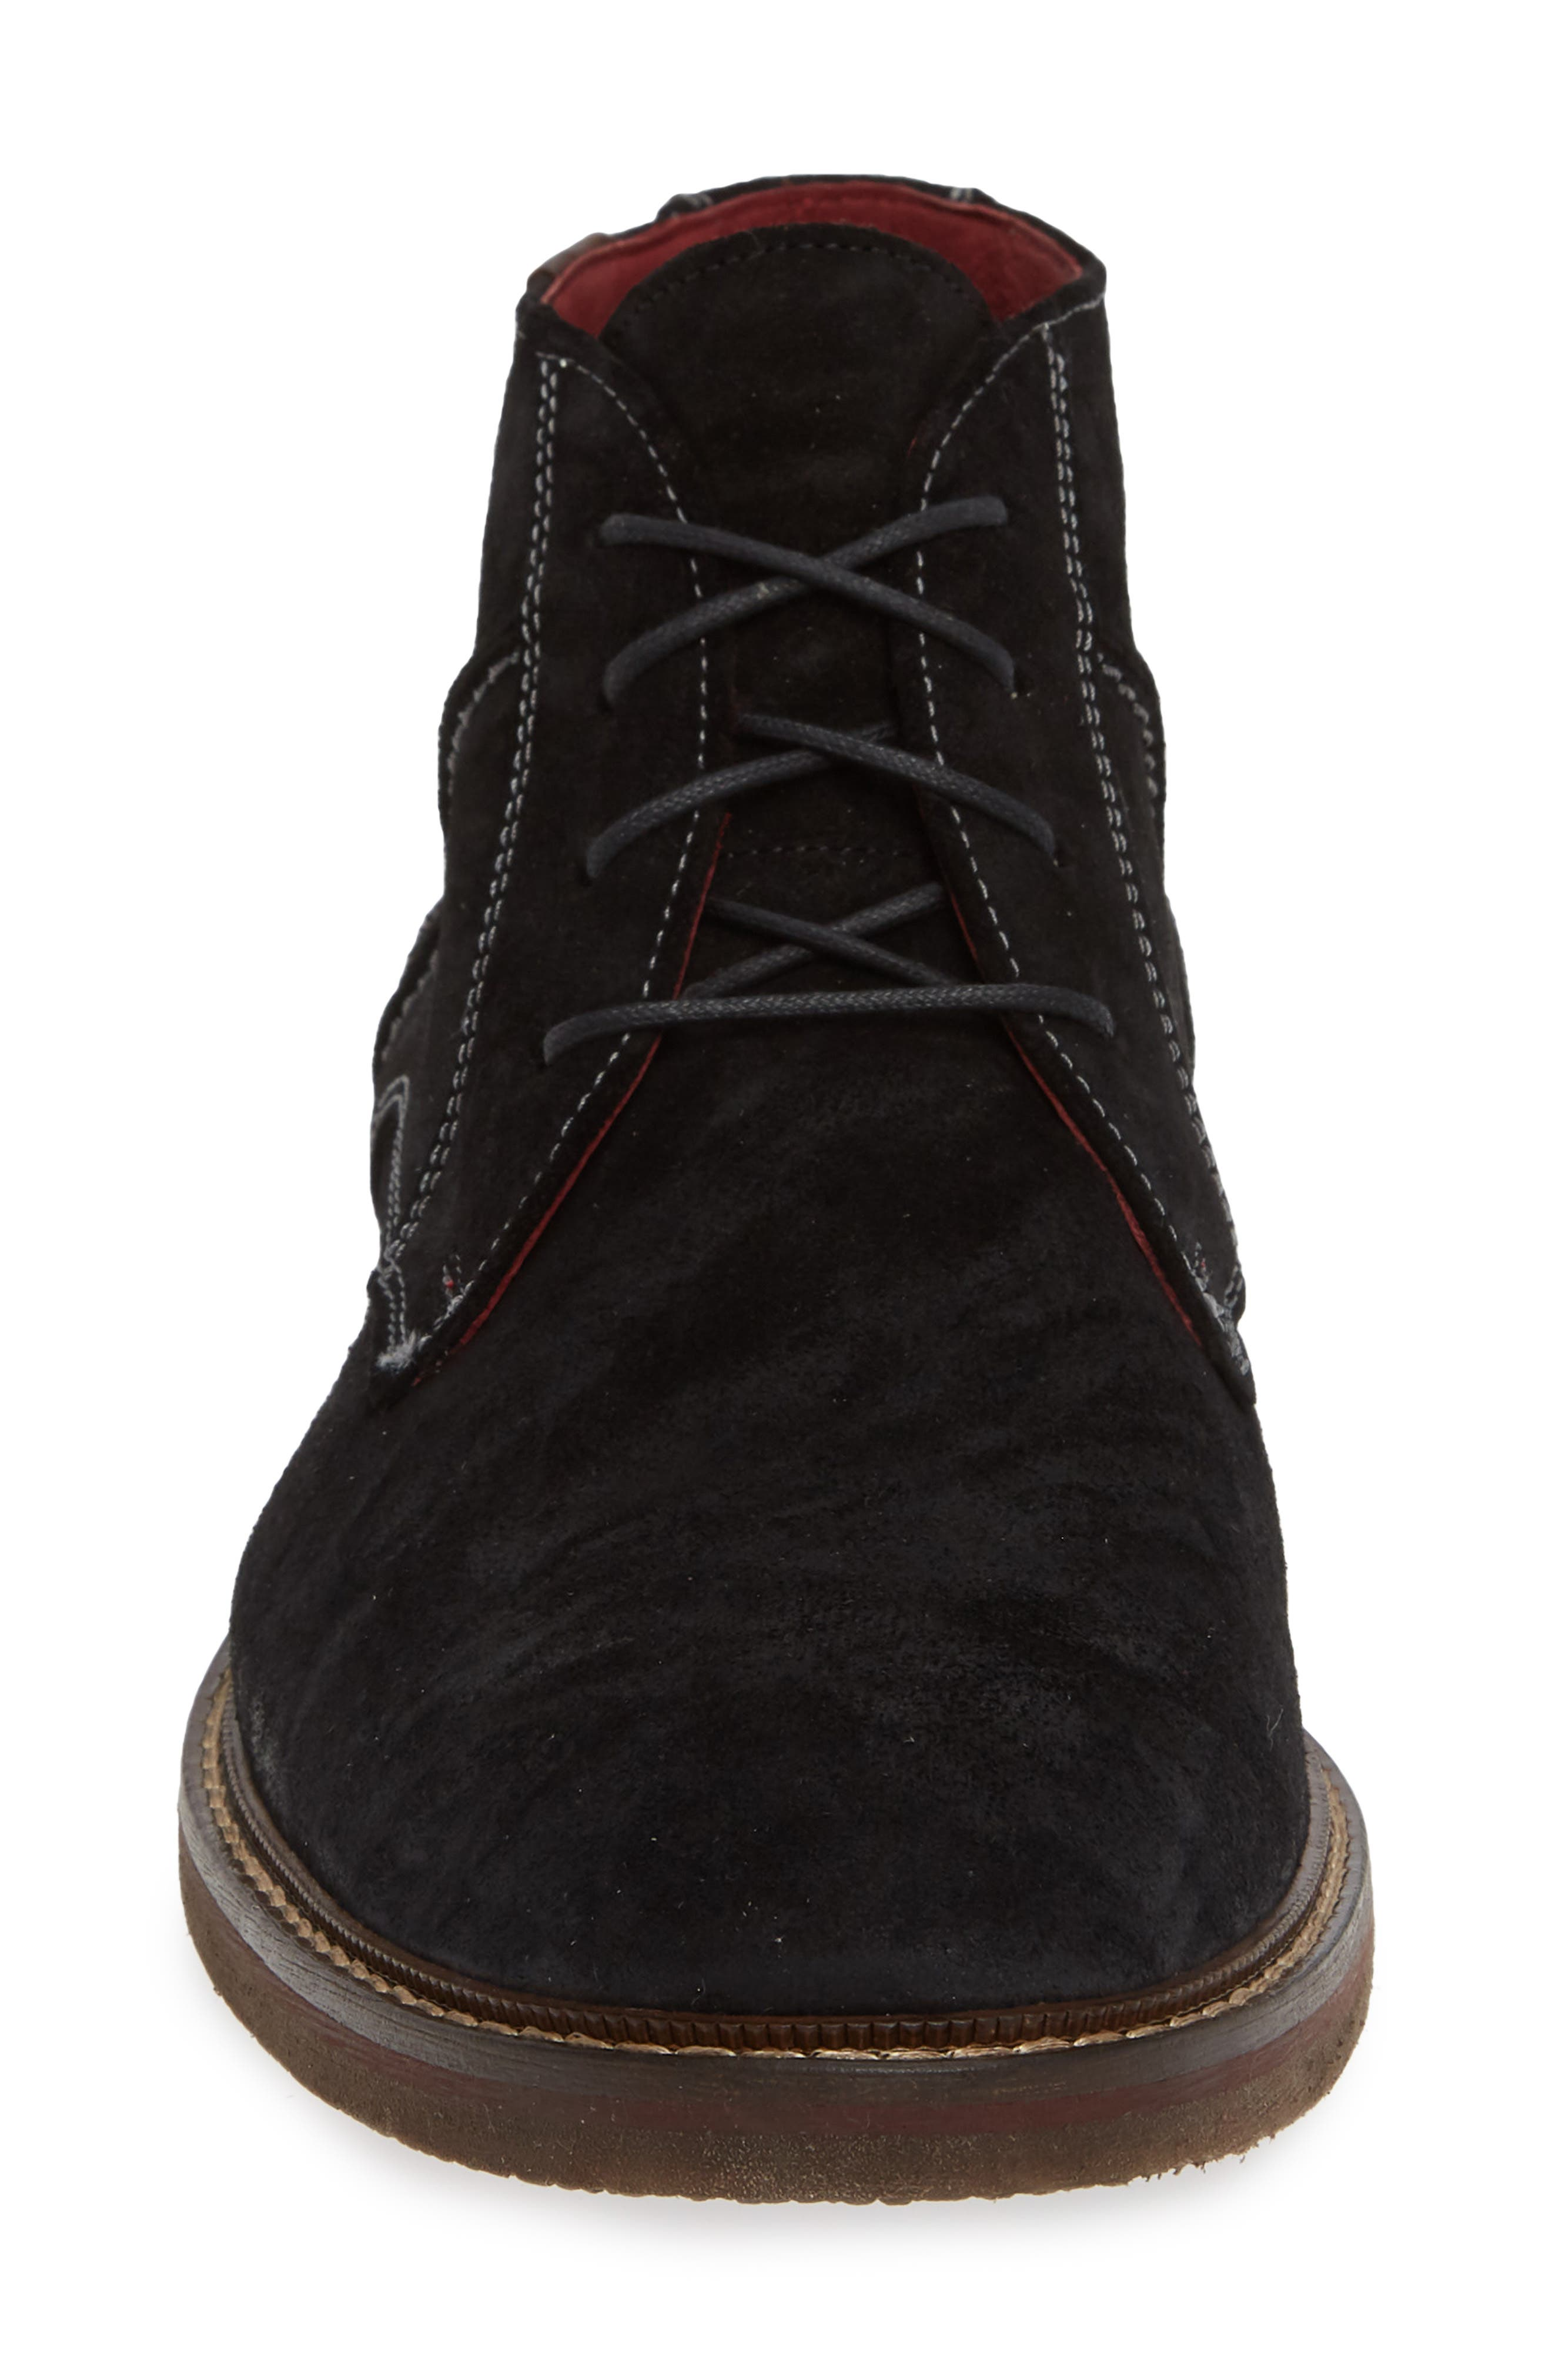 Dalbert Chukka Boot,                             Alternate thumbnail 4, color,                             BLACK/ KENIA SUEDE